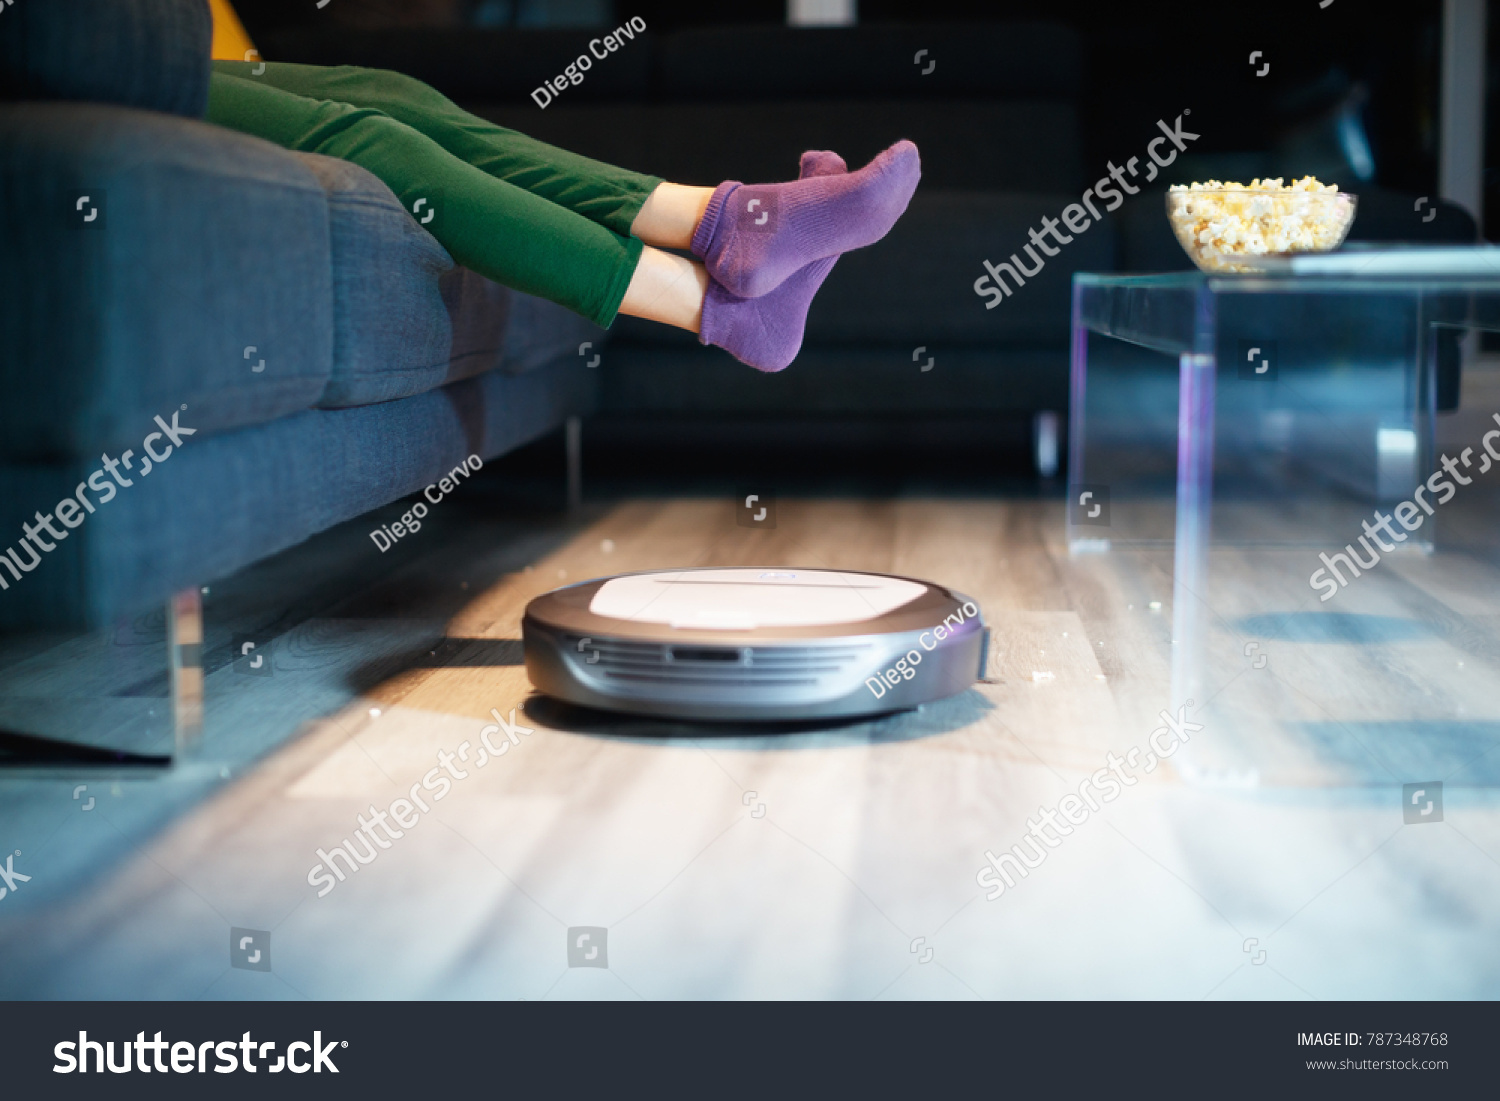 stock watches man photo shutterstock sits tv sofa beer on and with popcorn happy the image fat